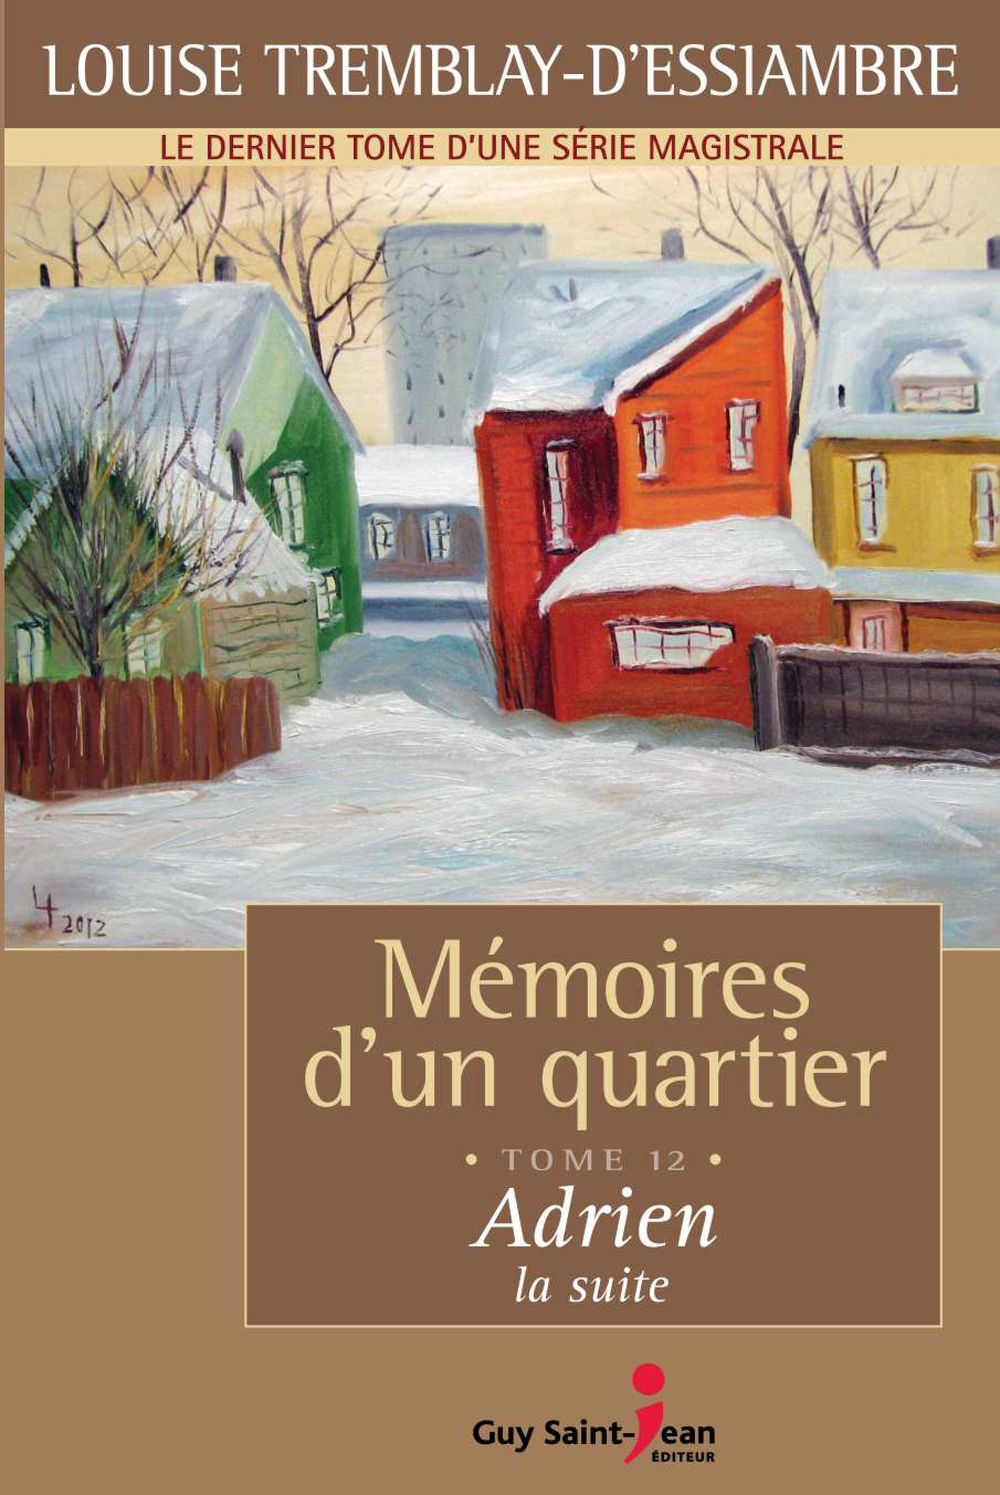 Mémoires d'un quartier, tome 12: Adrien, la suite By: Louise Tremblay-D'Essiambre